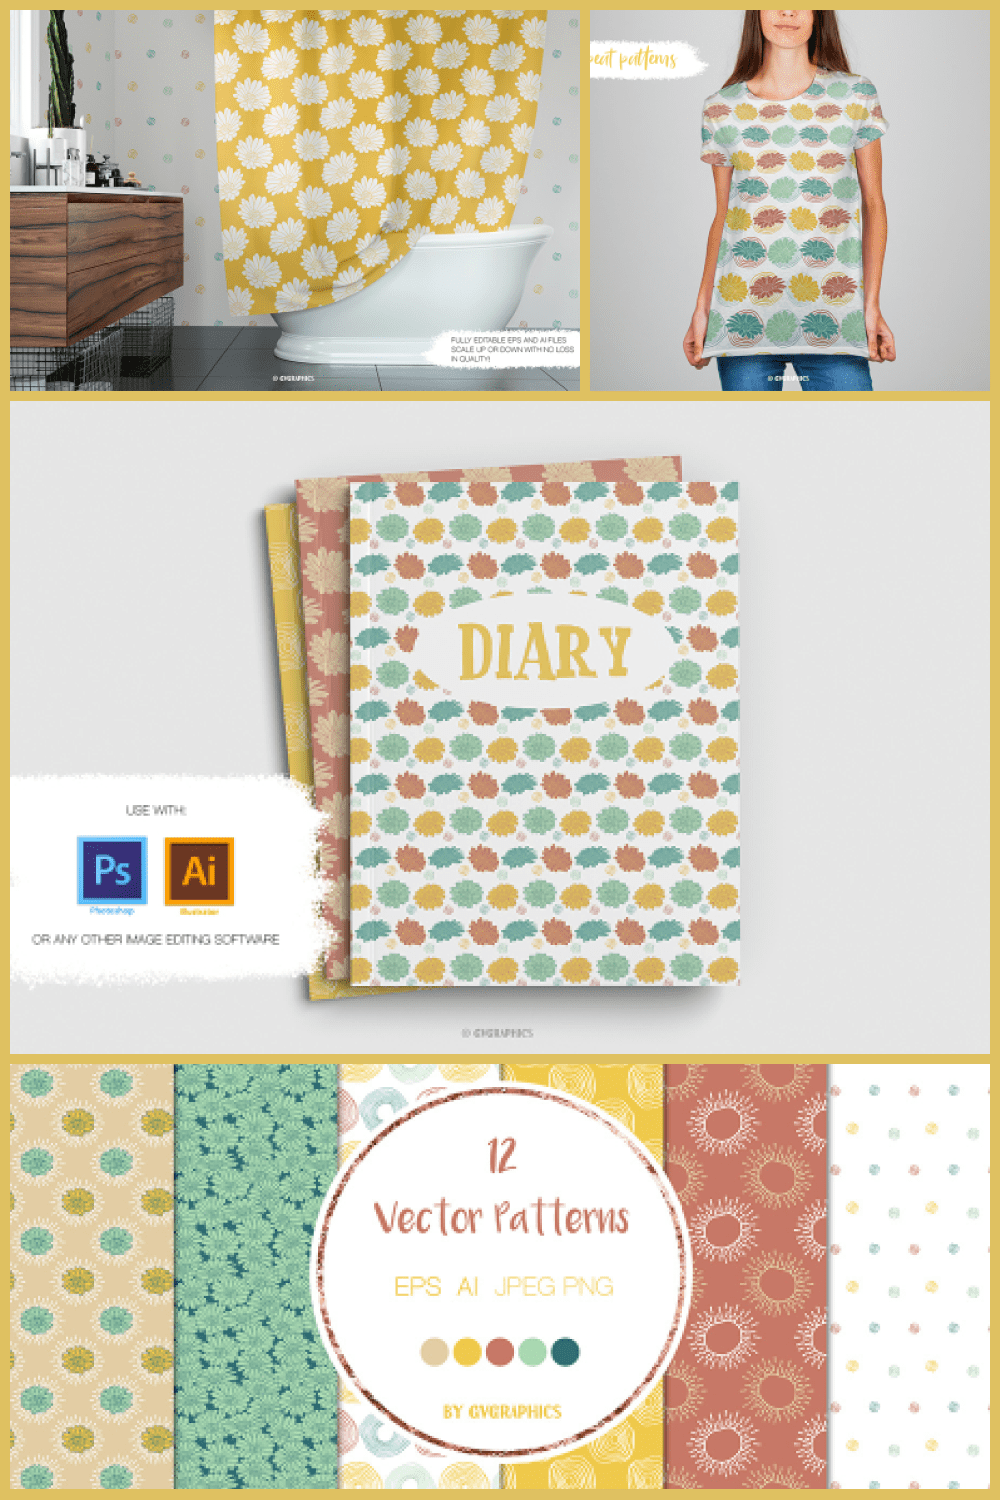 Colorful Flowers and Doodles Vector Patterns and Seamless Tiles - MasterBundles - Pinterest Collage Image.